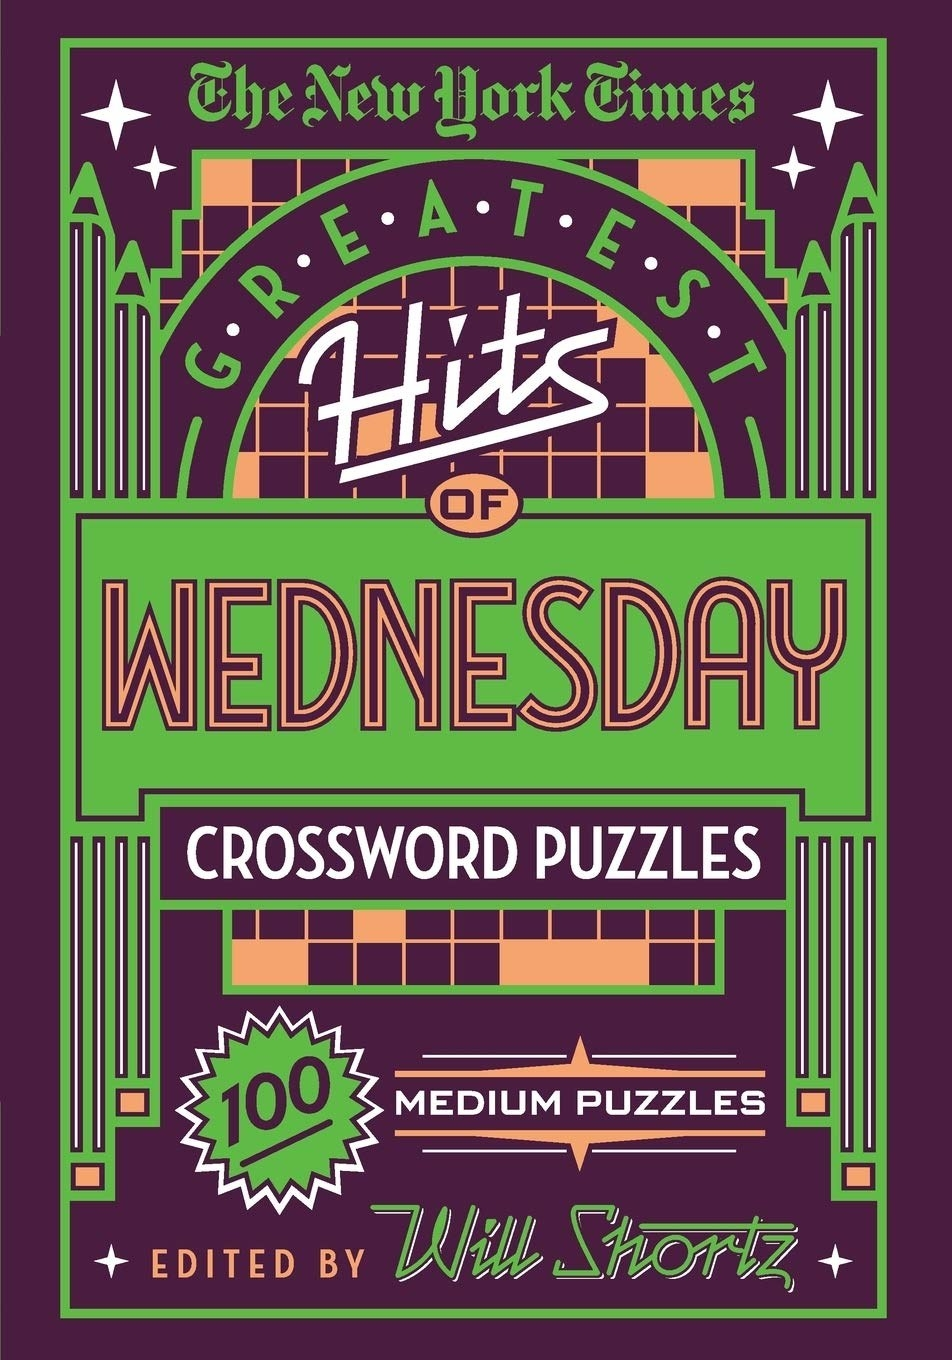 cover of The New York Times Greatest Hits of Wednesday crossword puzzles